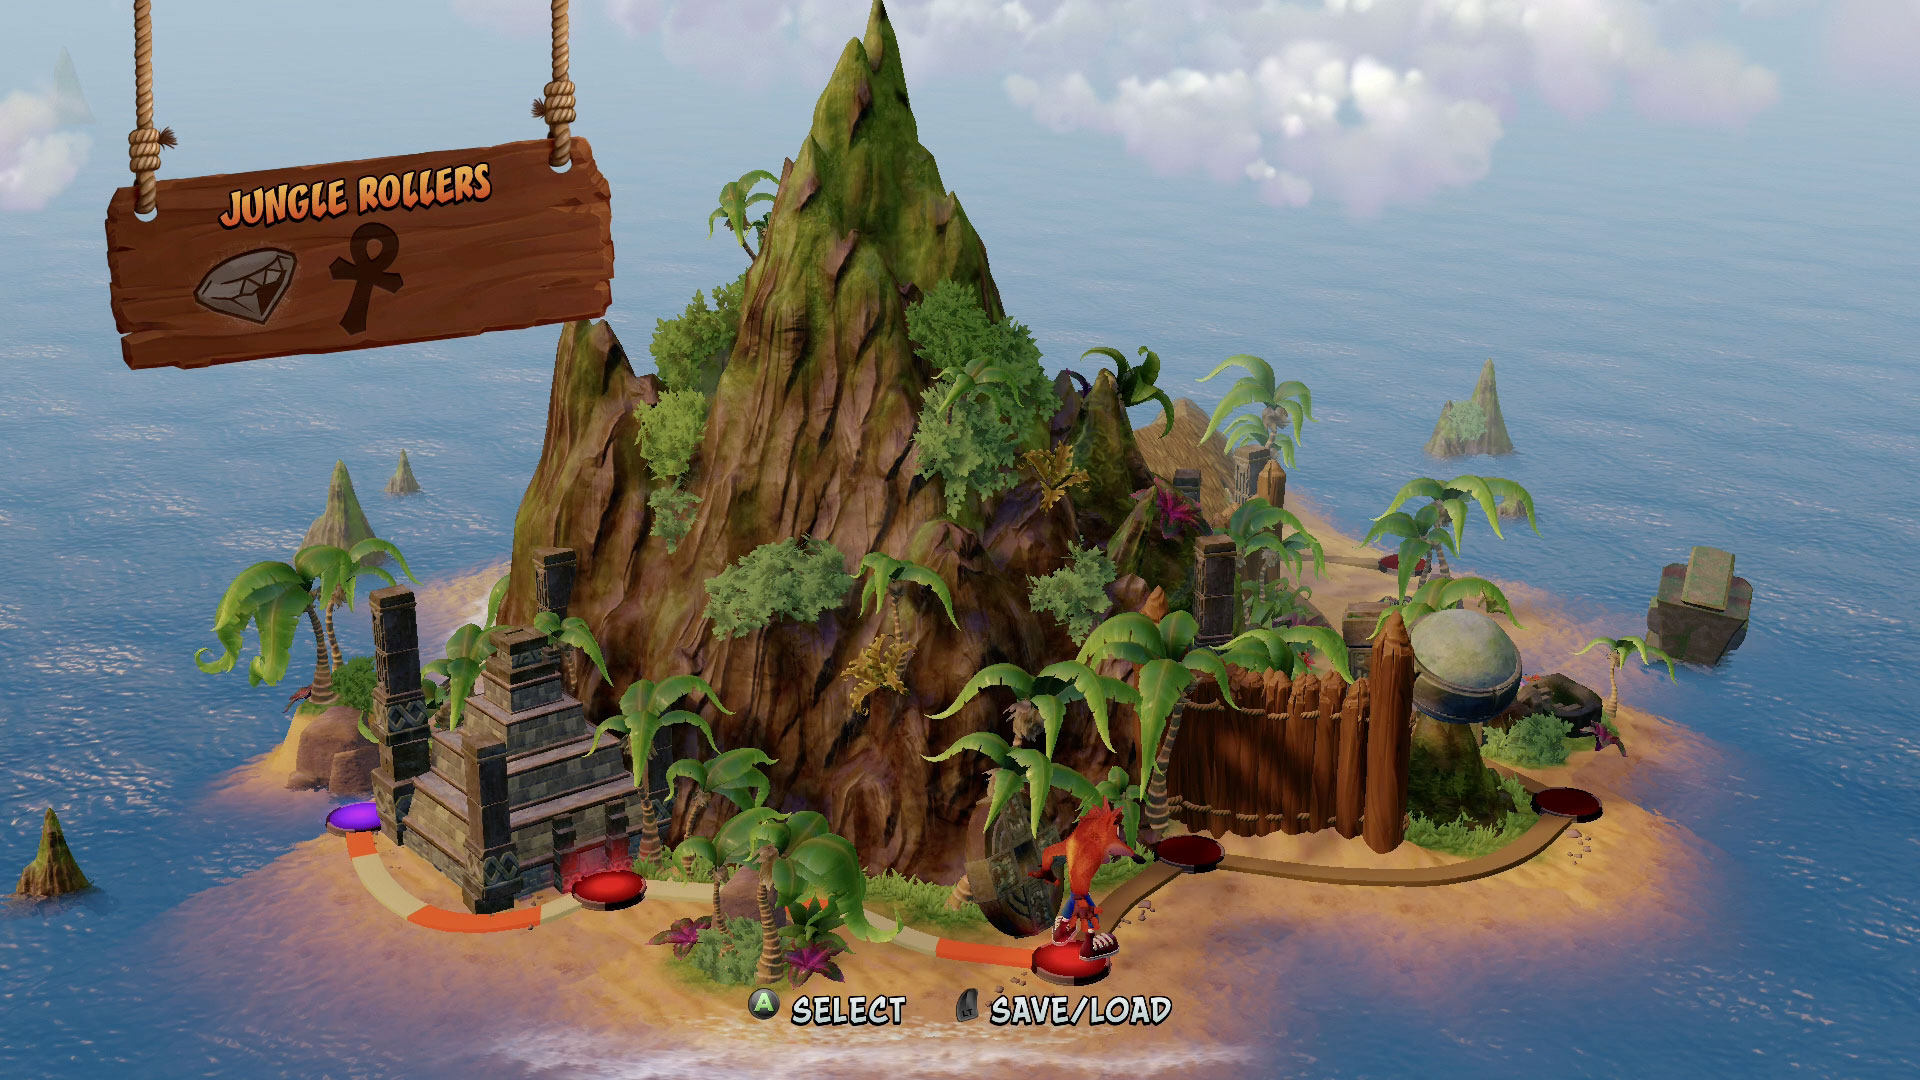 How to Get All Boxes in Jungle Rollers Level in Crash Bandicoot N